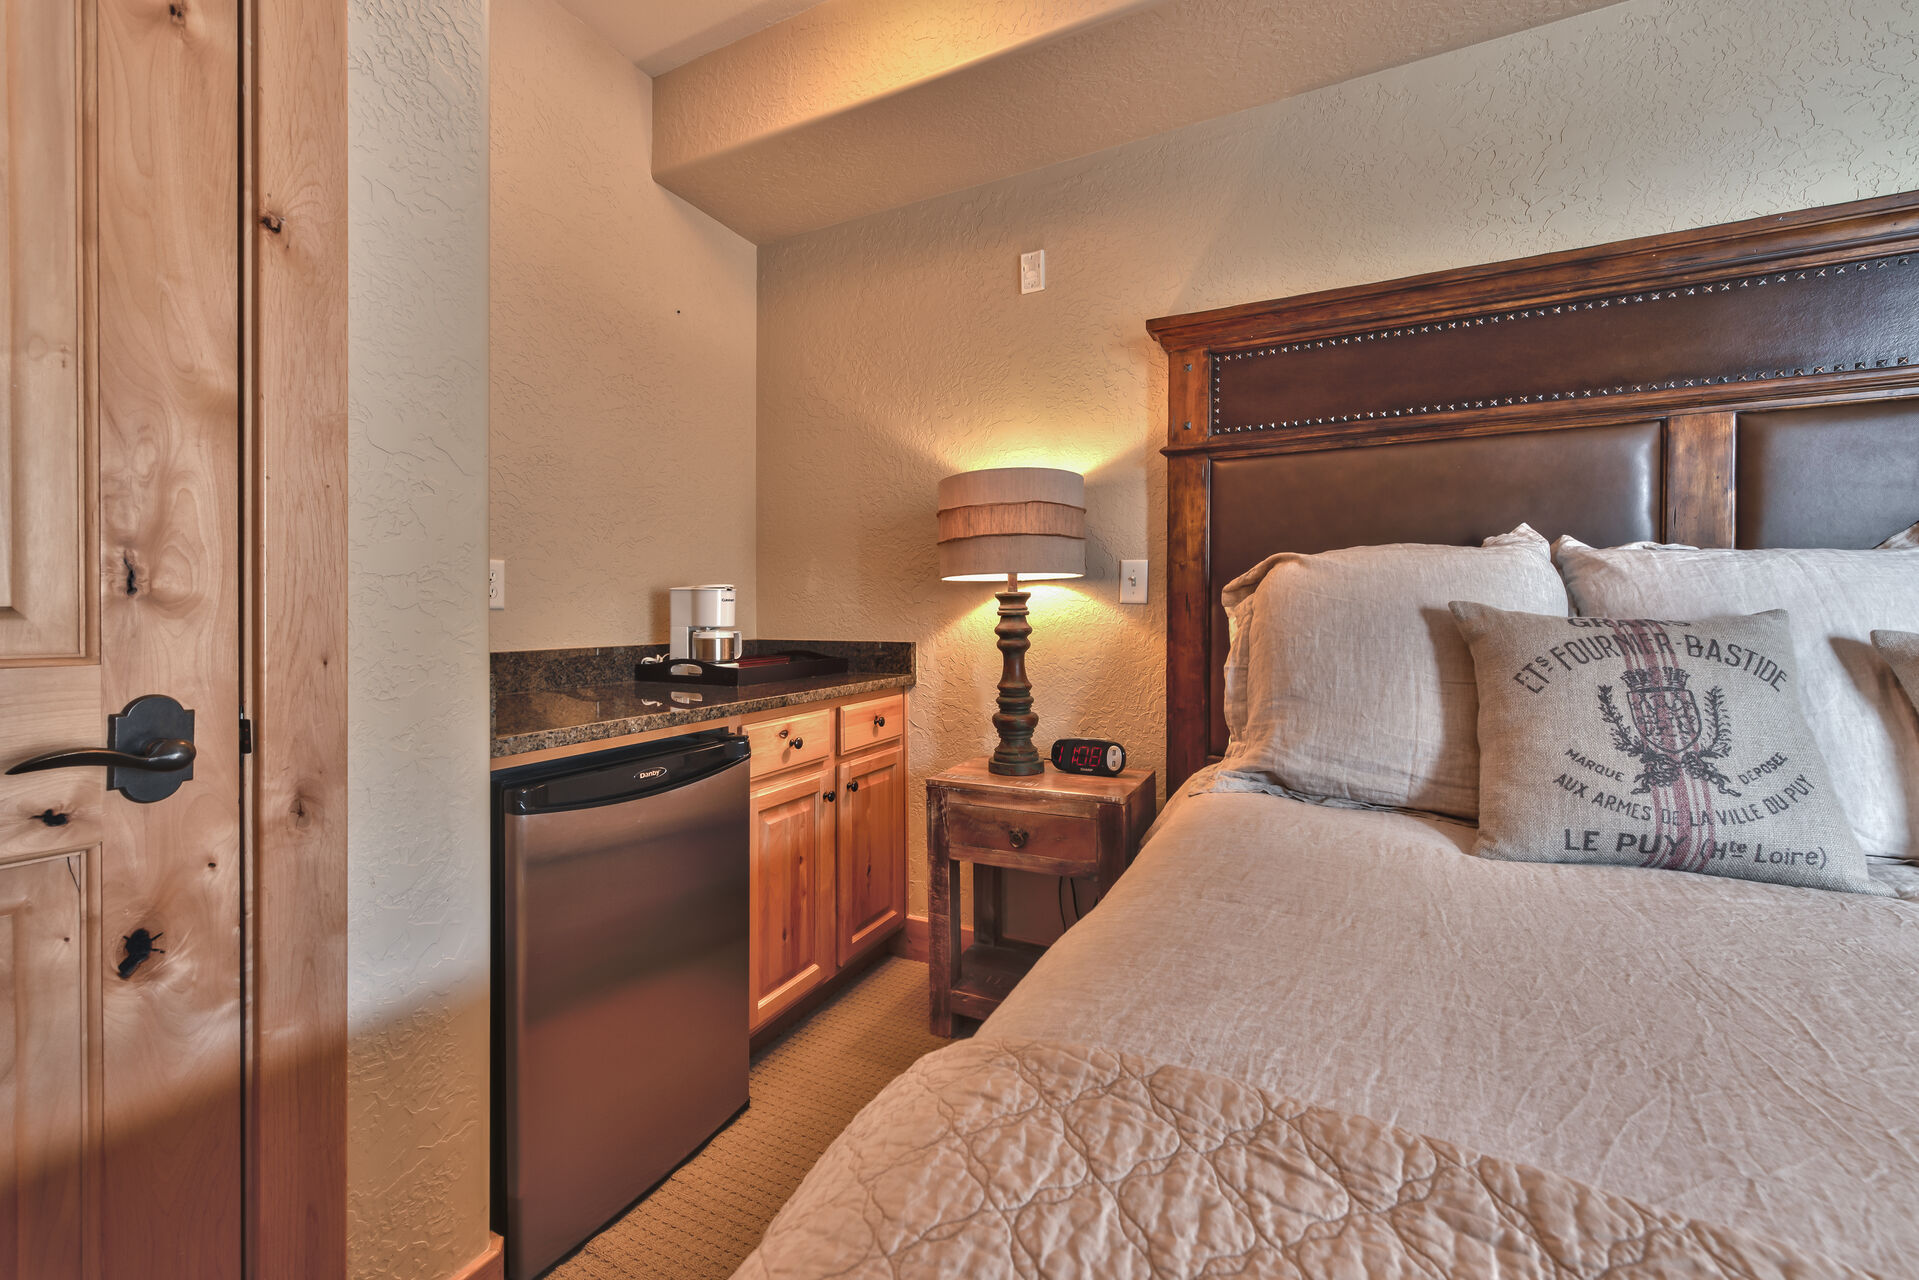 Master Bedroom Kitchenette with Coffee Maker and Mini Fridge